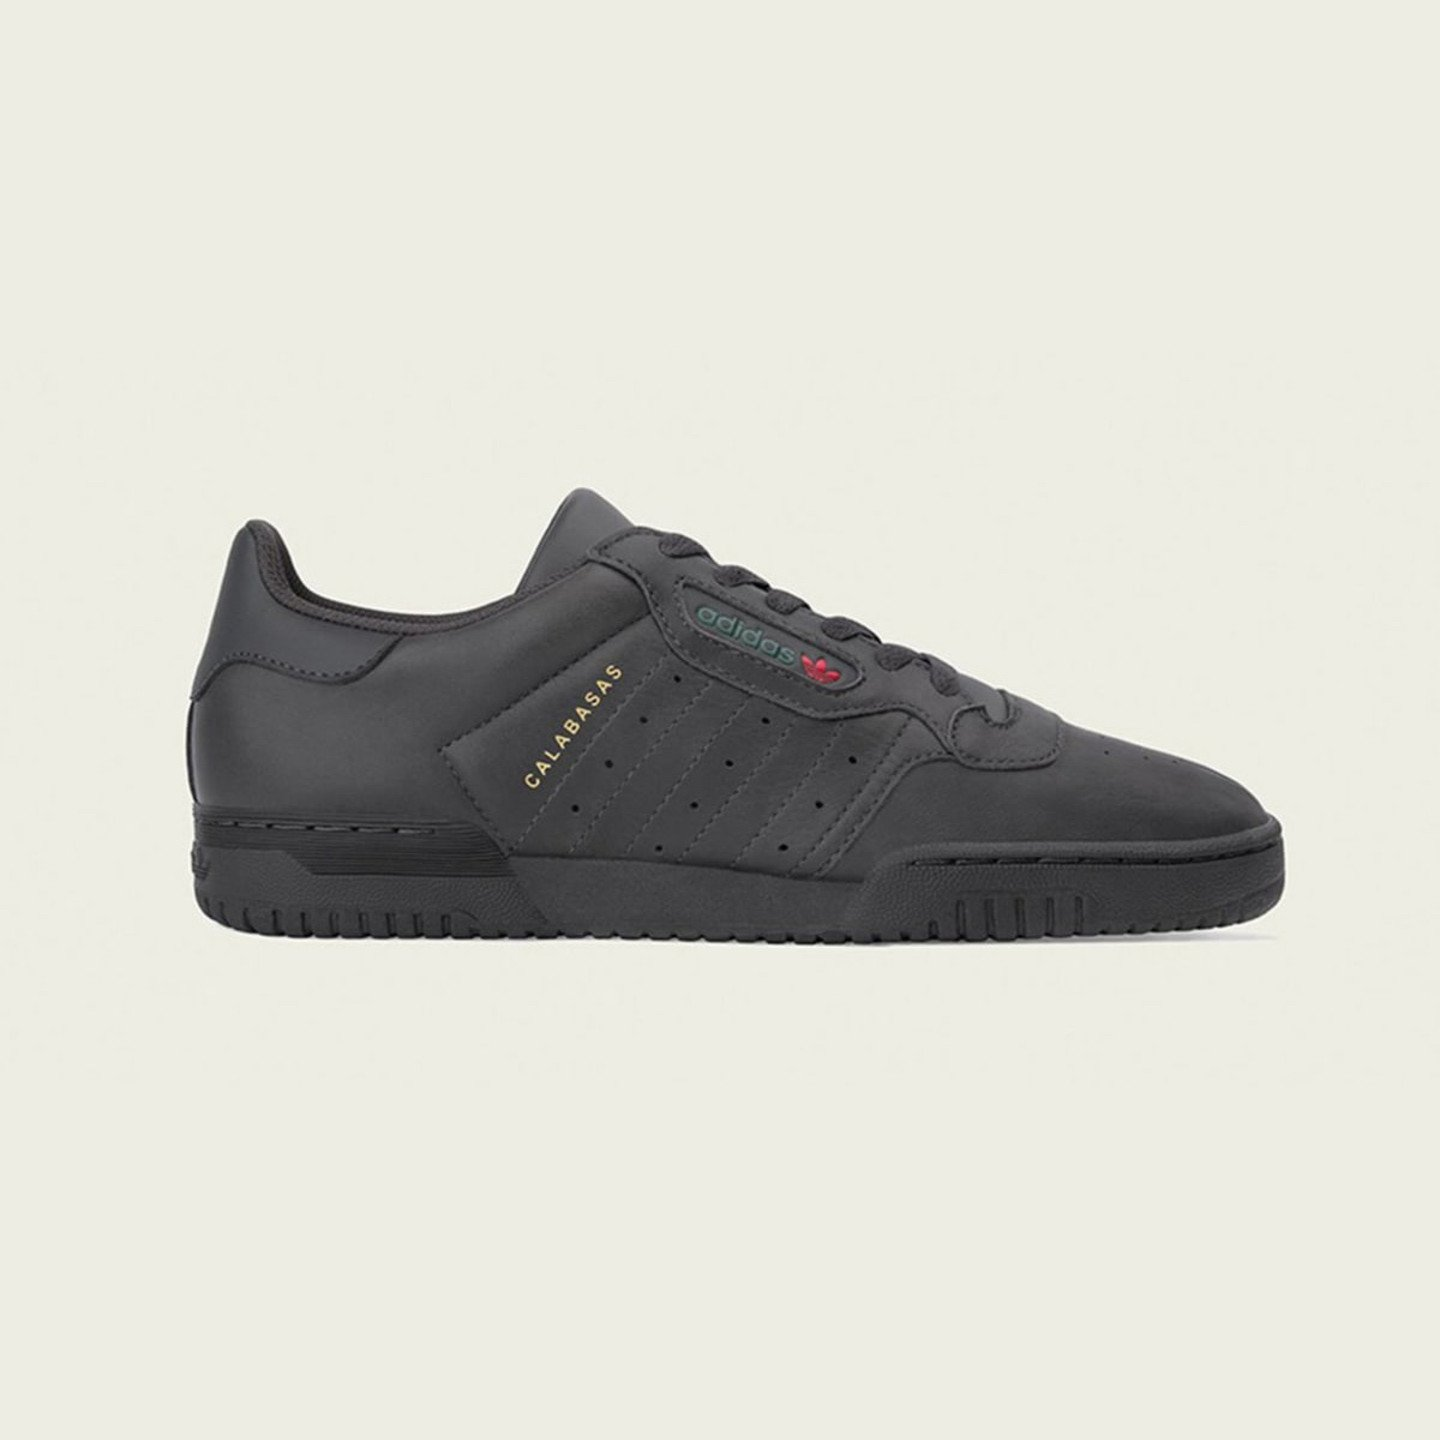 Adidas Yeezy Powerphase Core Black CG6420